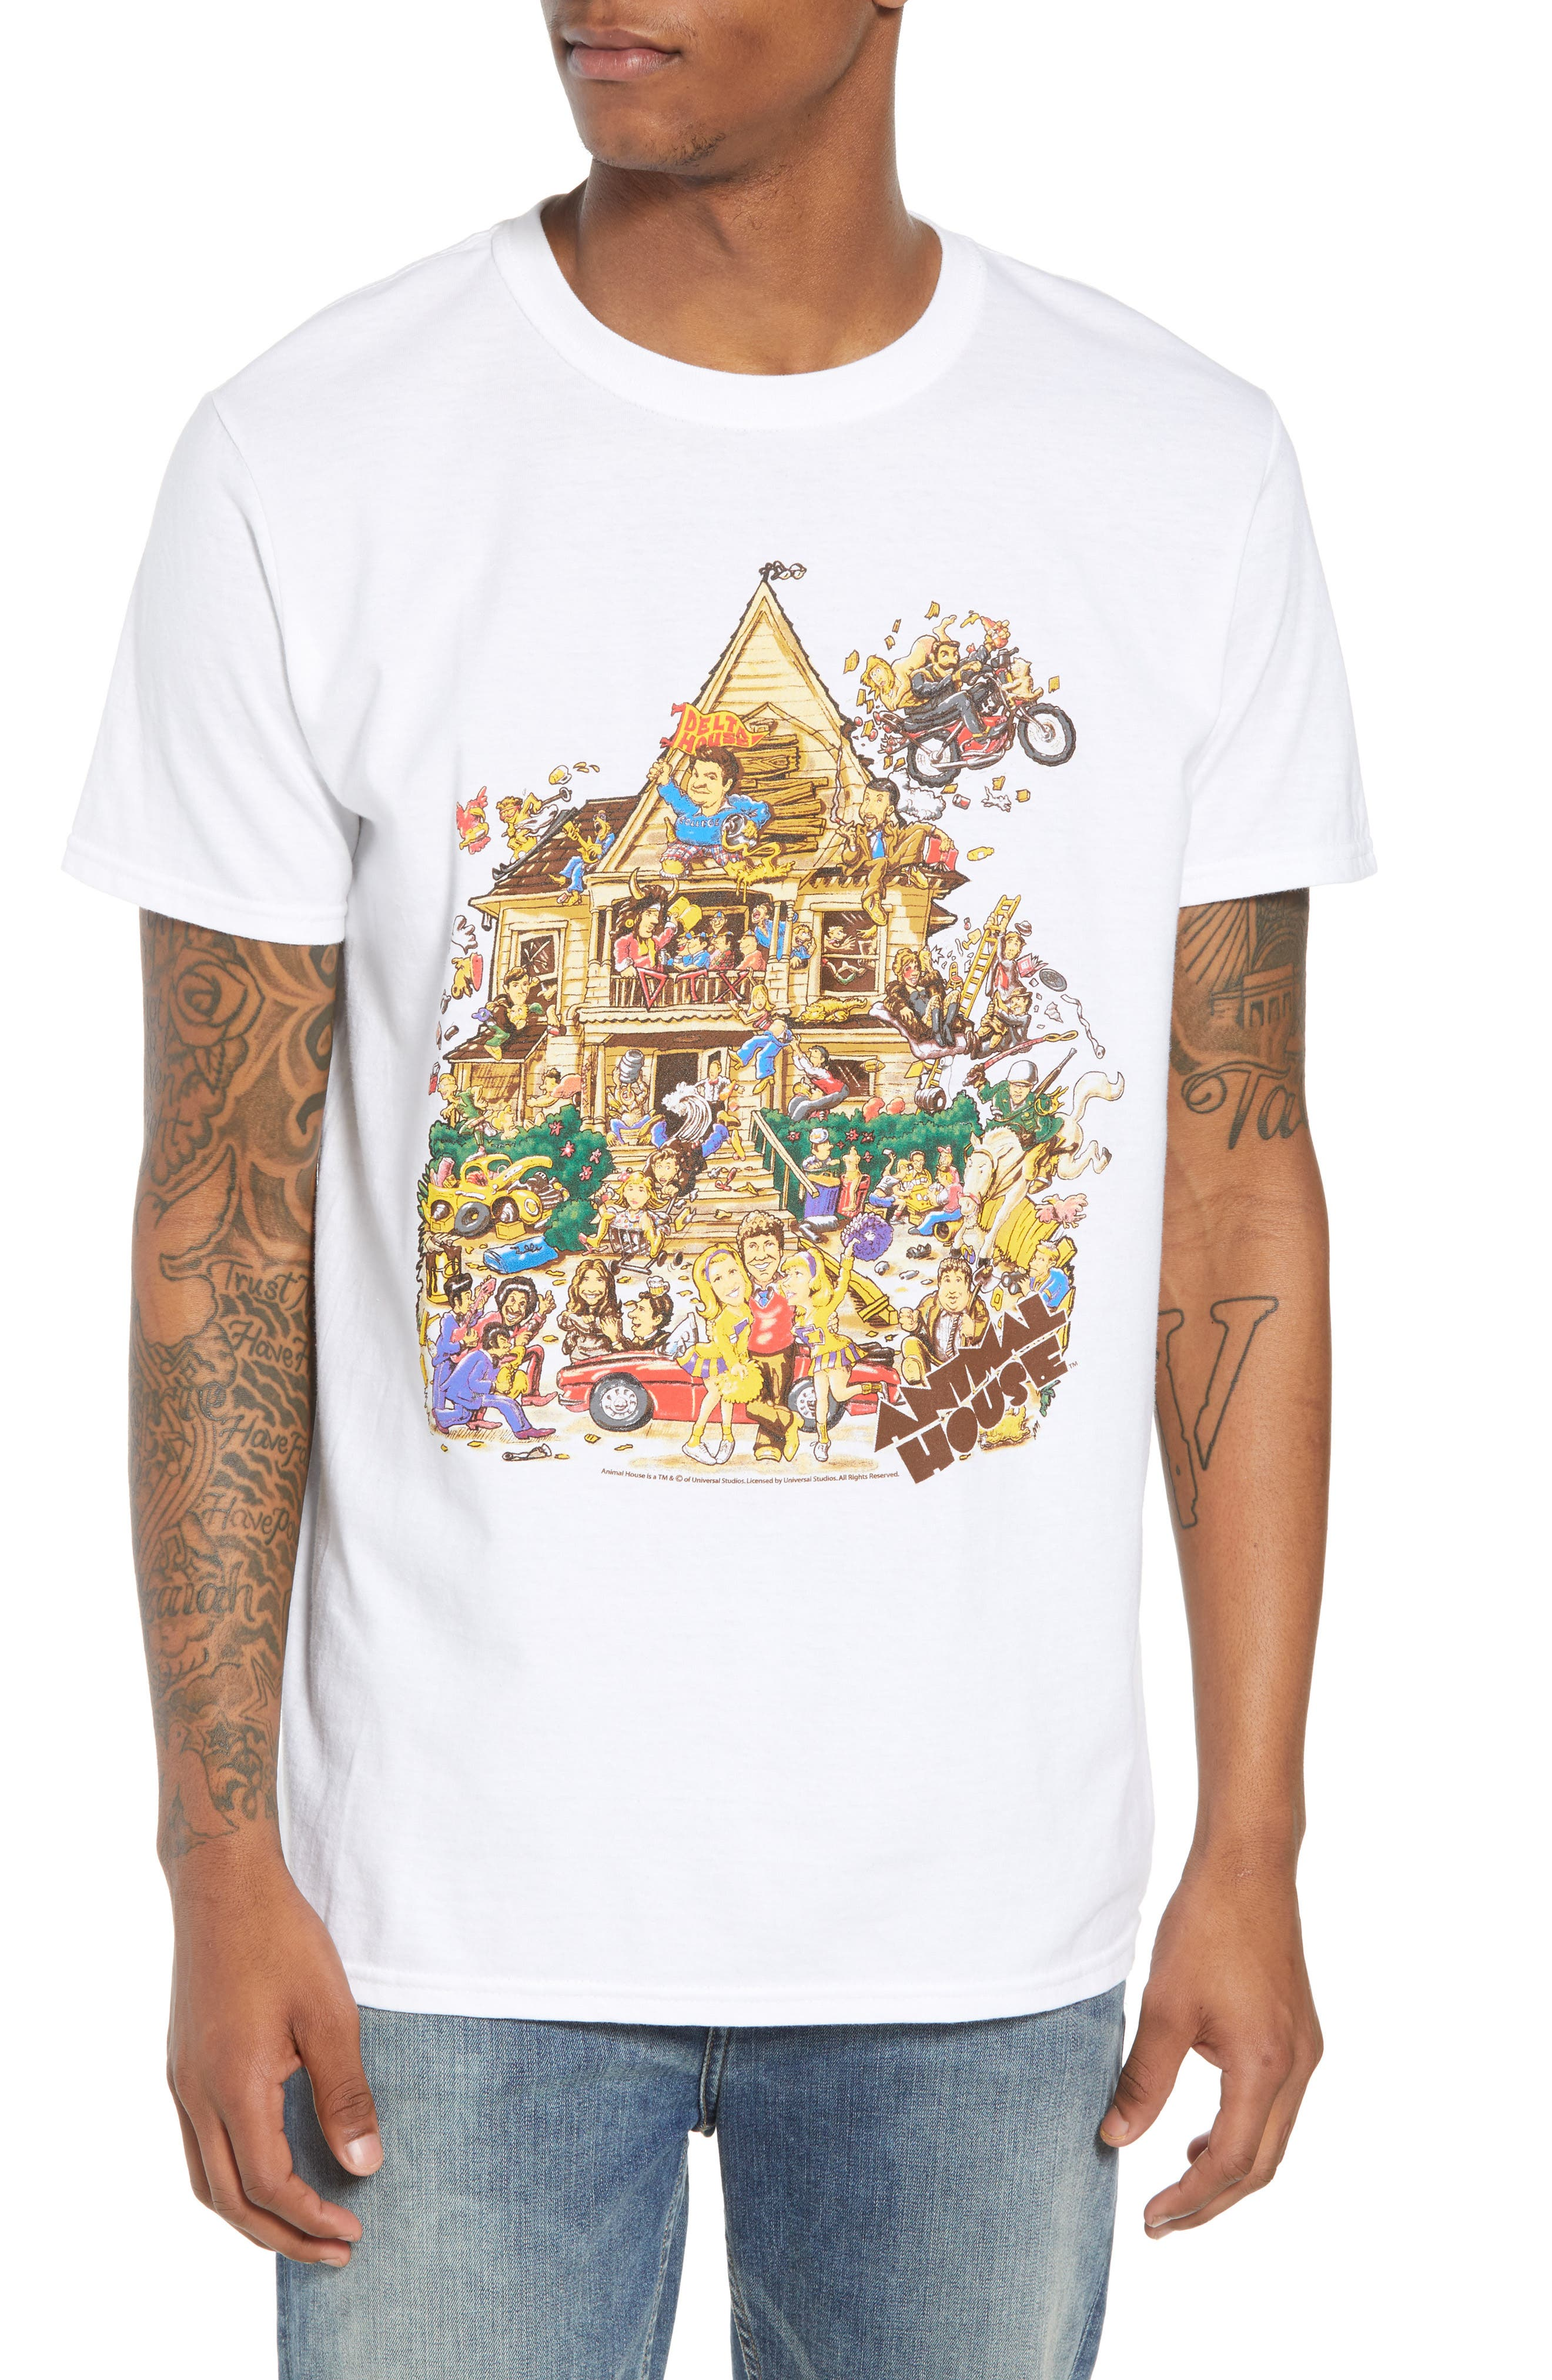 The Rail Animal House T-Shirt